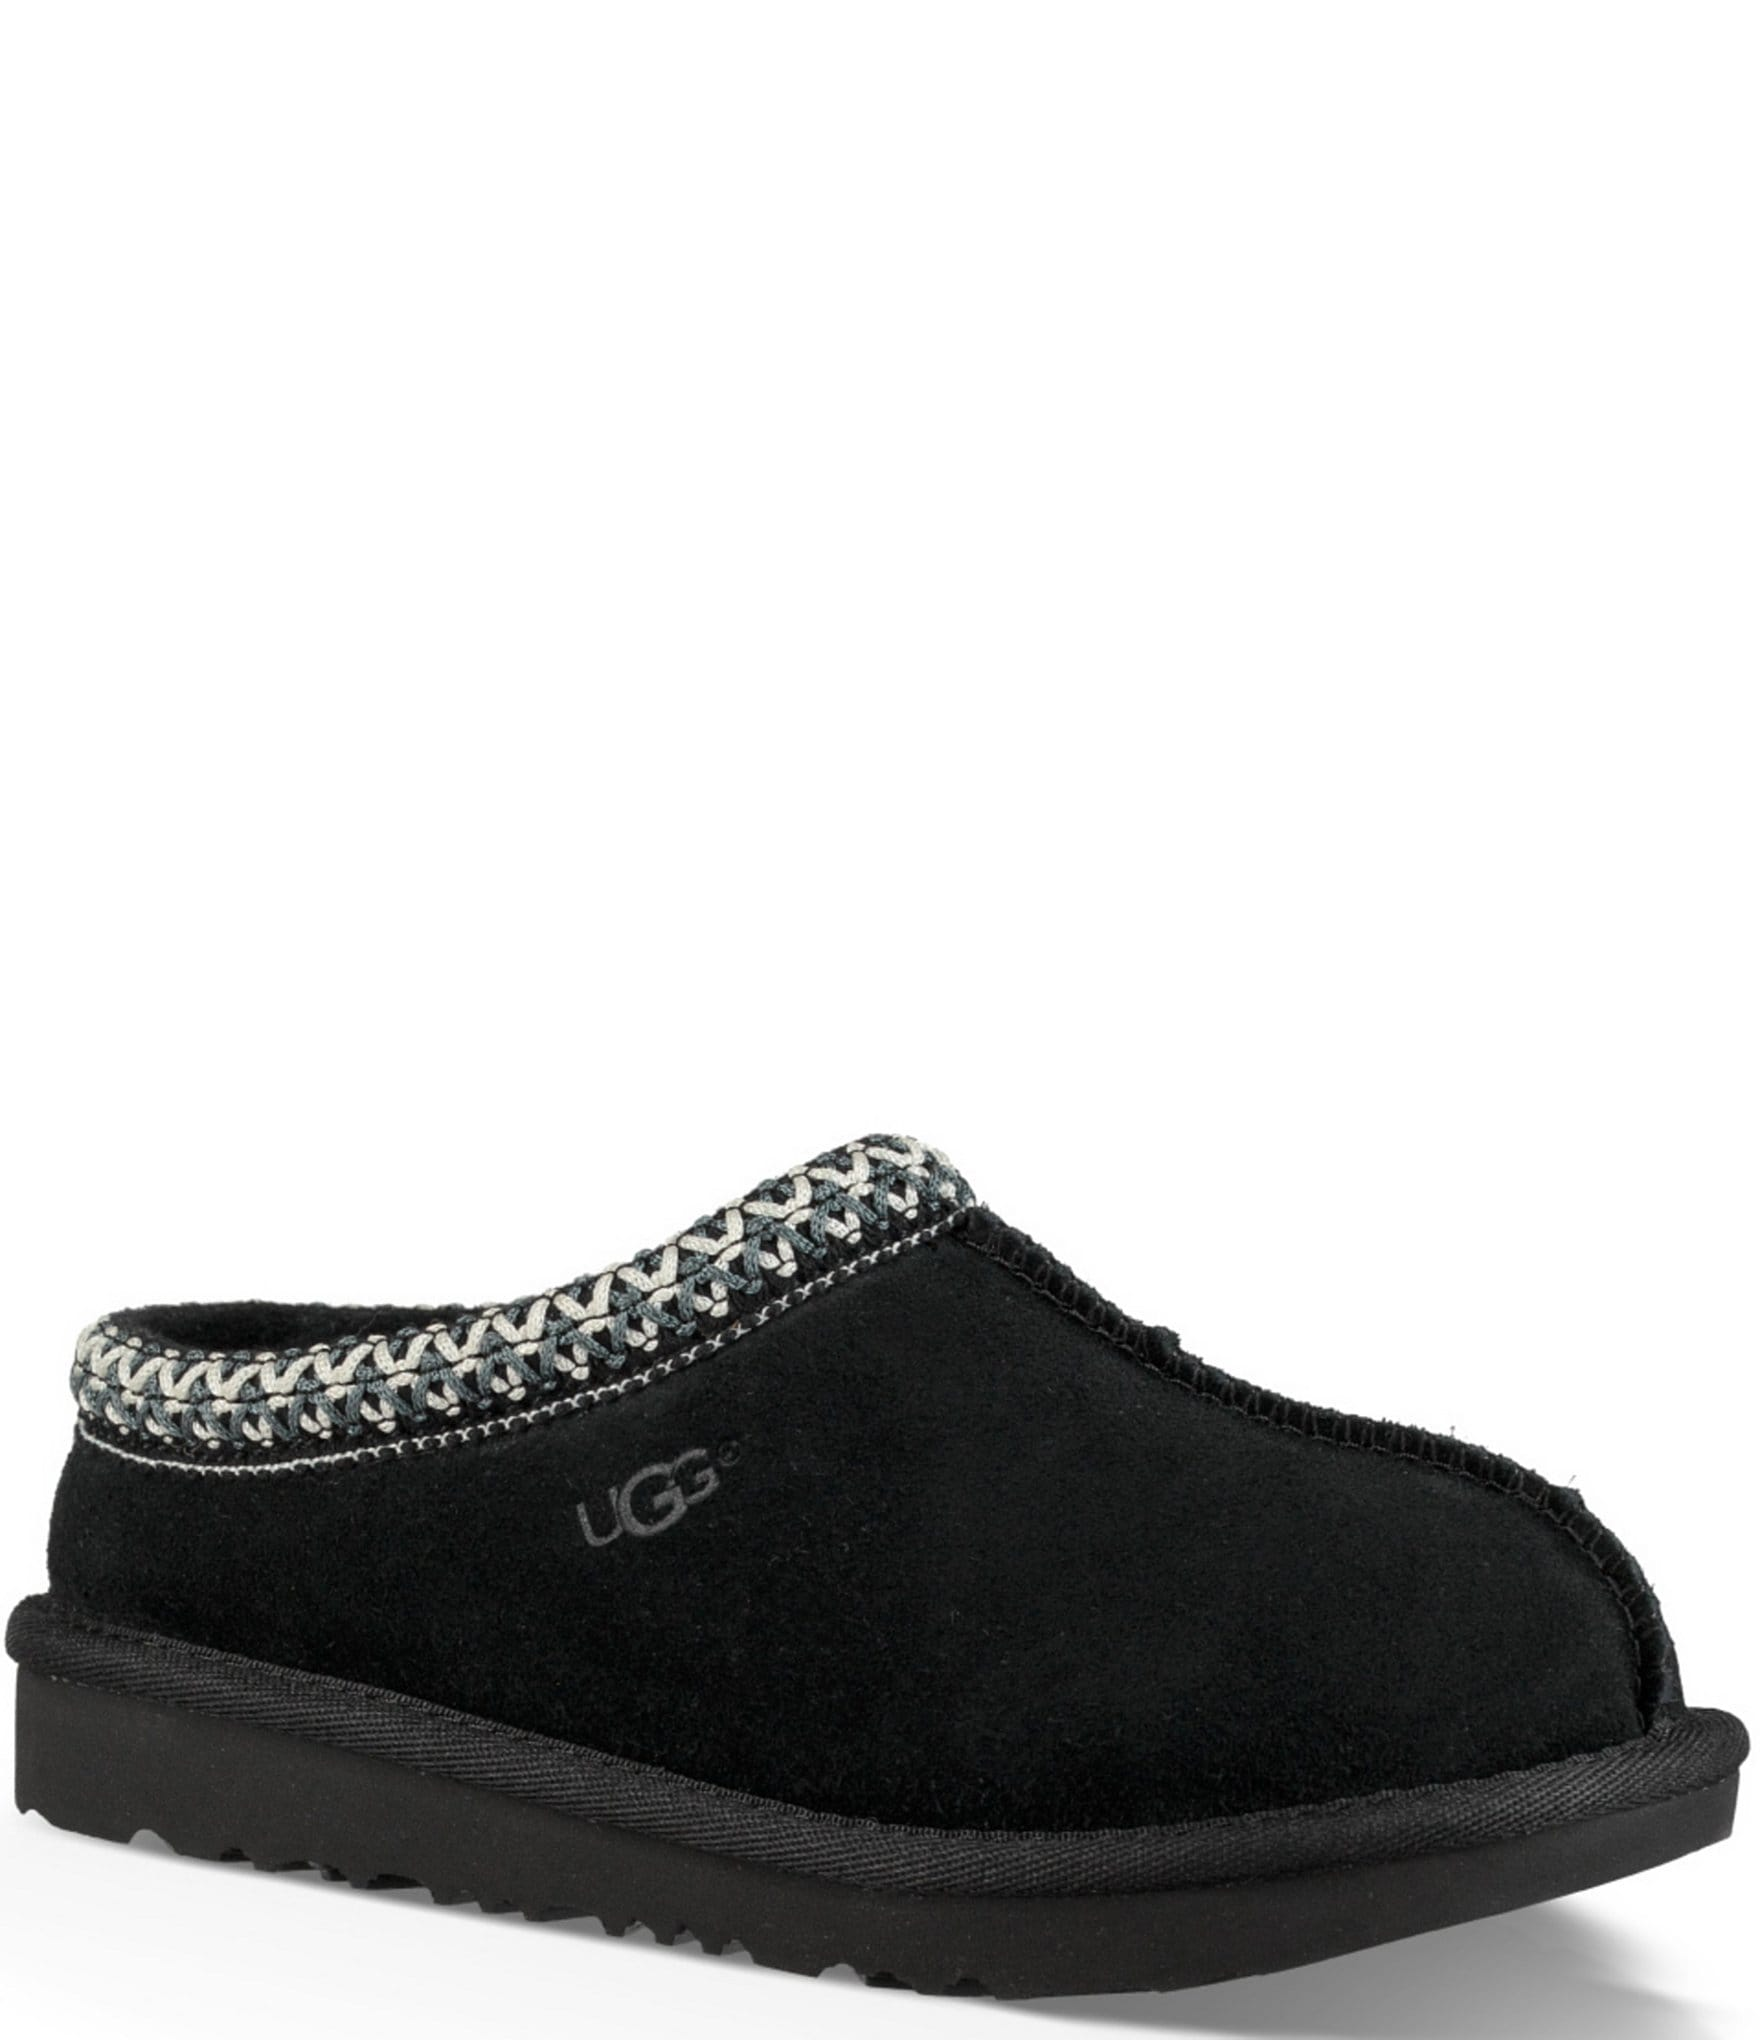 ugg slippers | Dillards.com